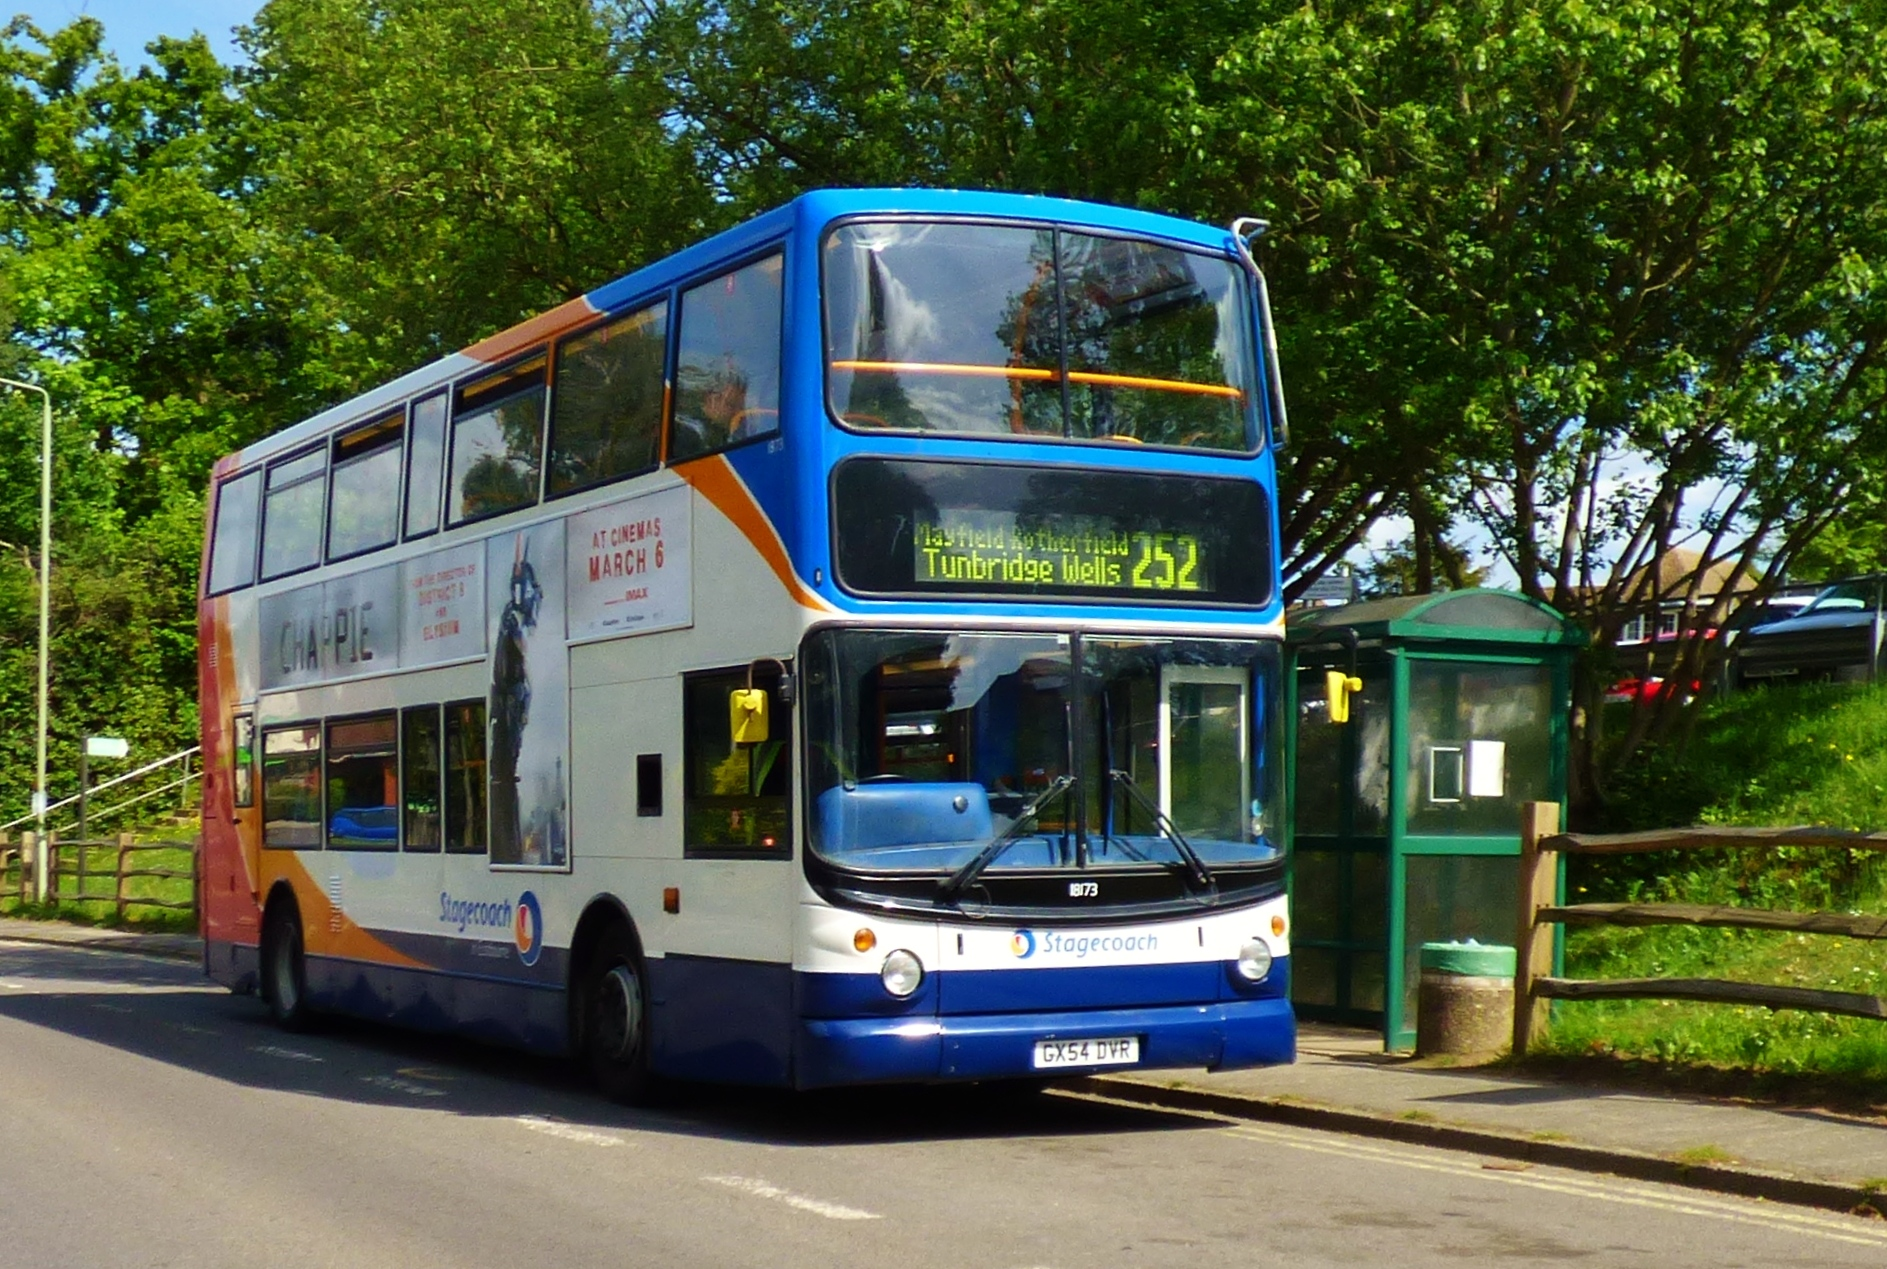 #AYearOfBuses 252: Tunbridge Wells – Heathfield